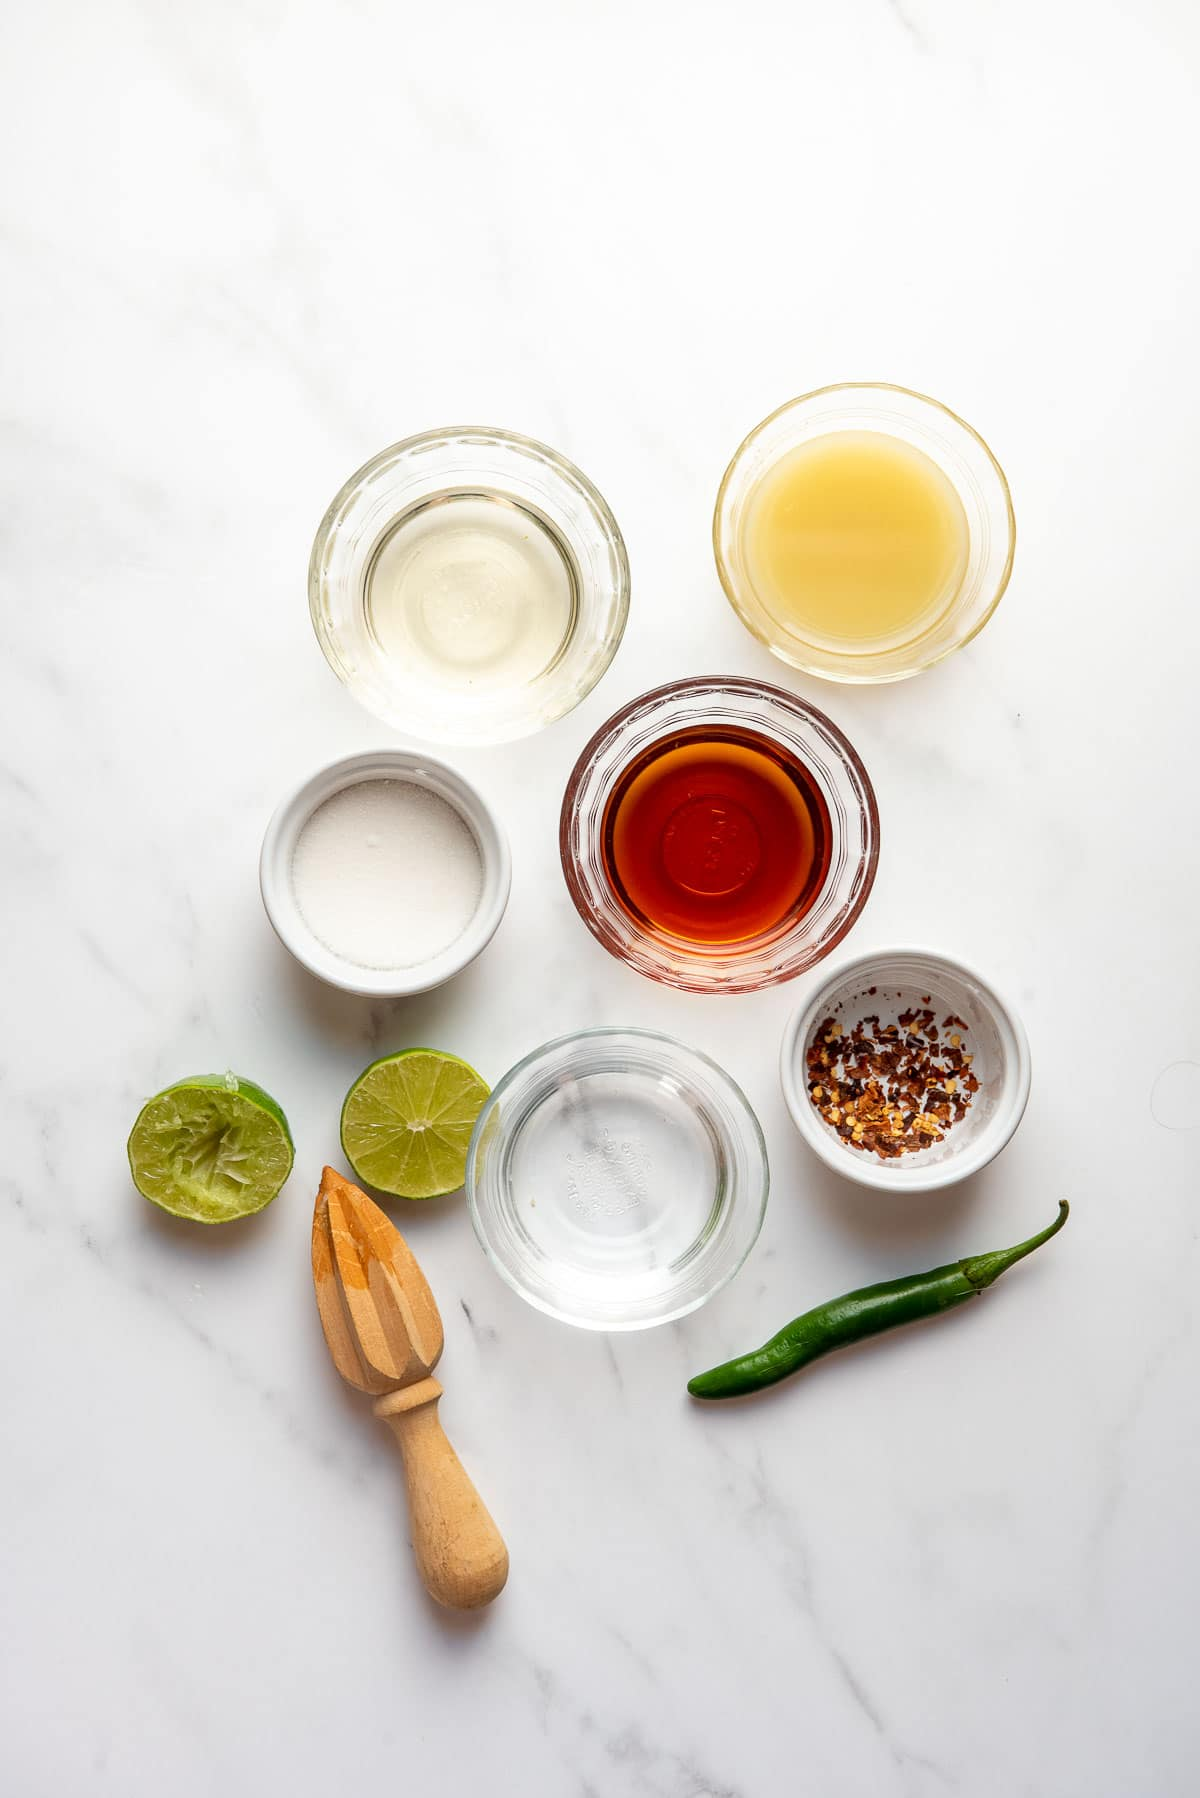 nuoc cham ingredients